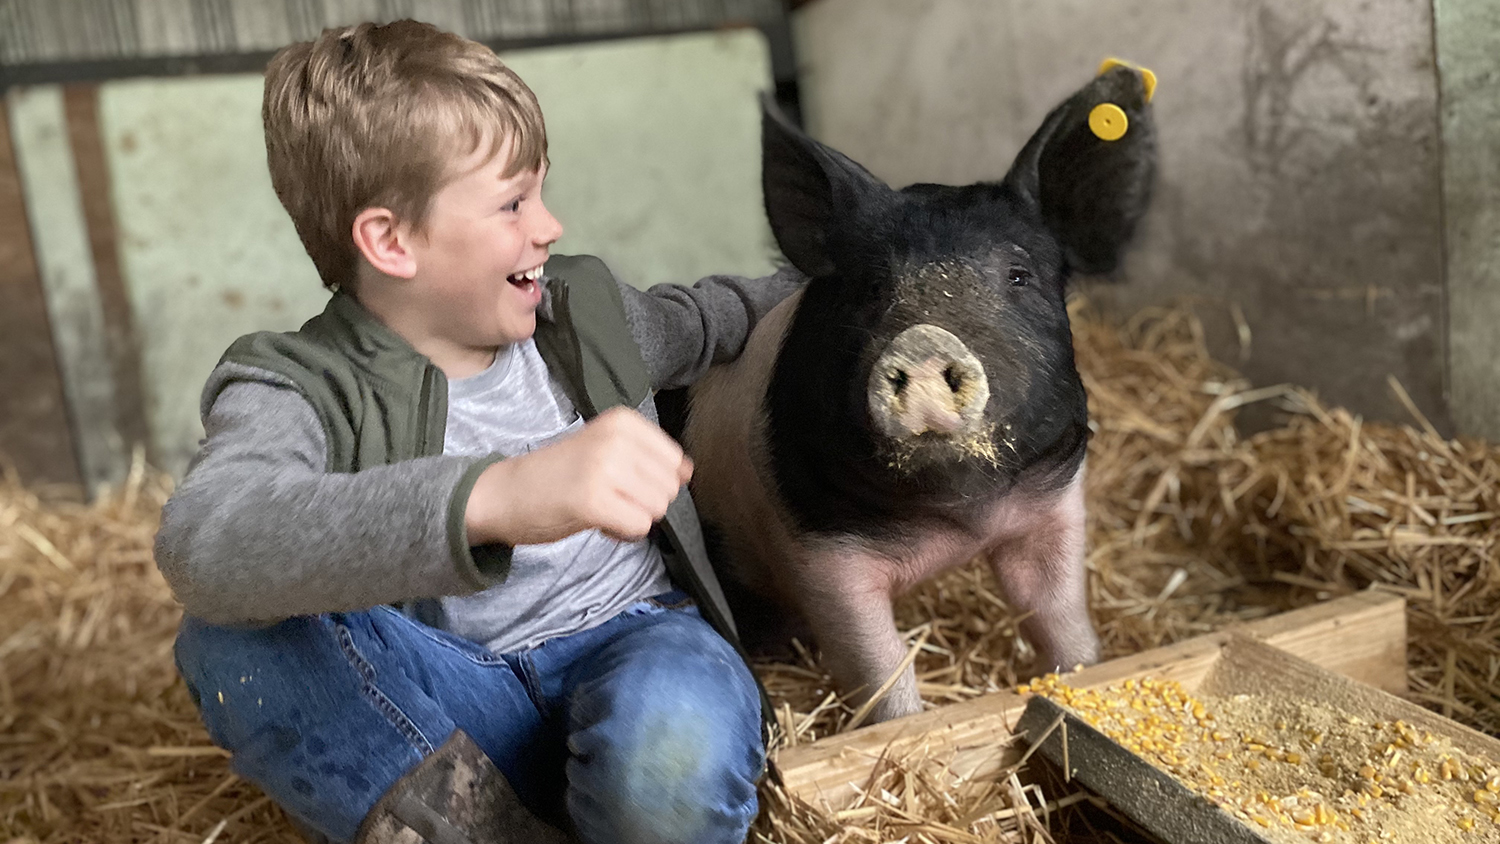 Smiling child with his arm around a pig